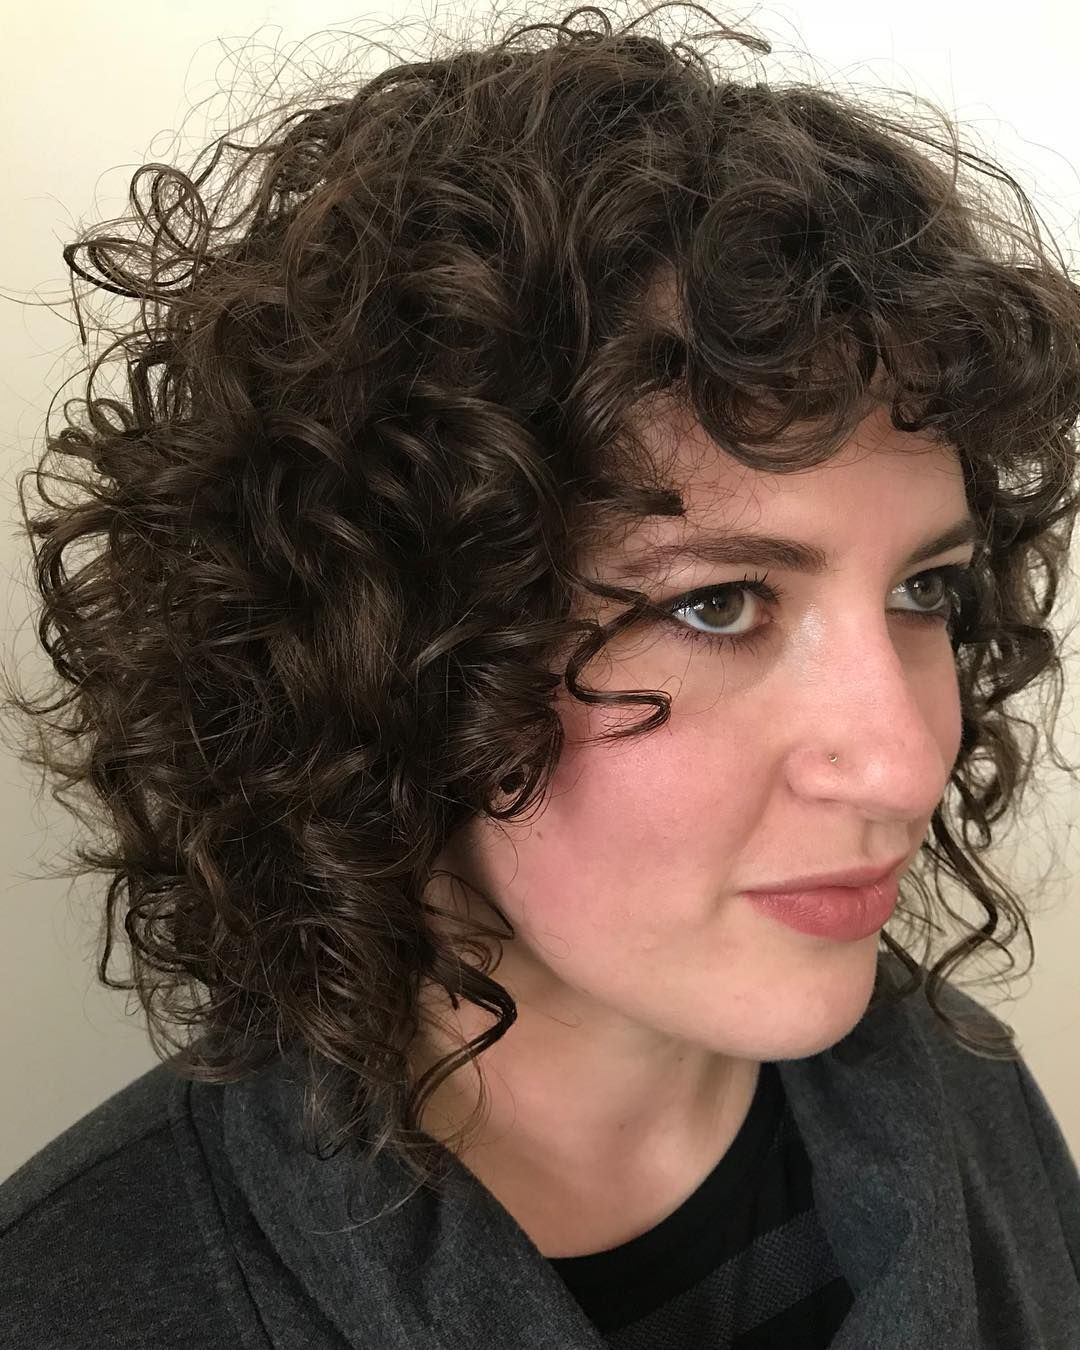 75 best curly hairstyles ideas 2019 - hairstyles for curly